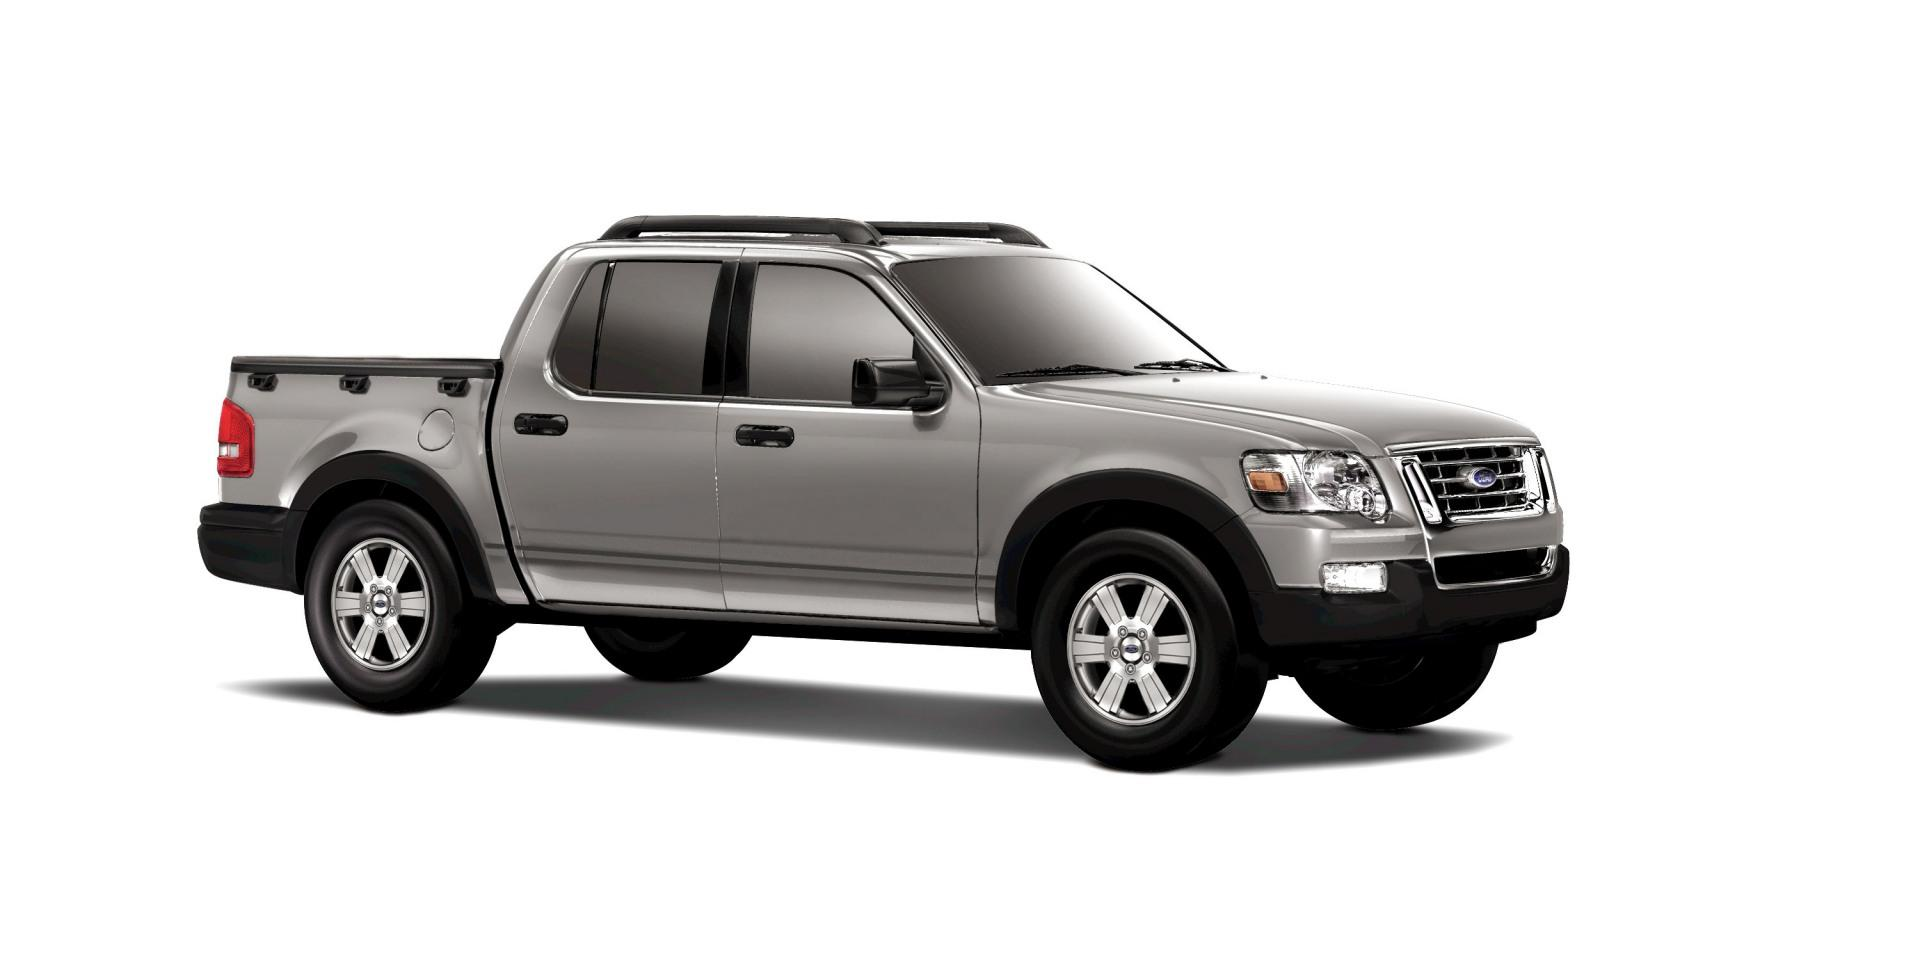 2010 Ford Explorer Sport Trac News And Information